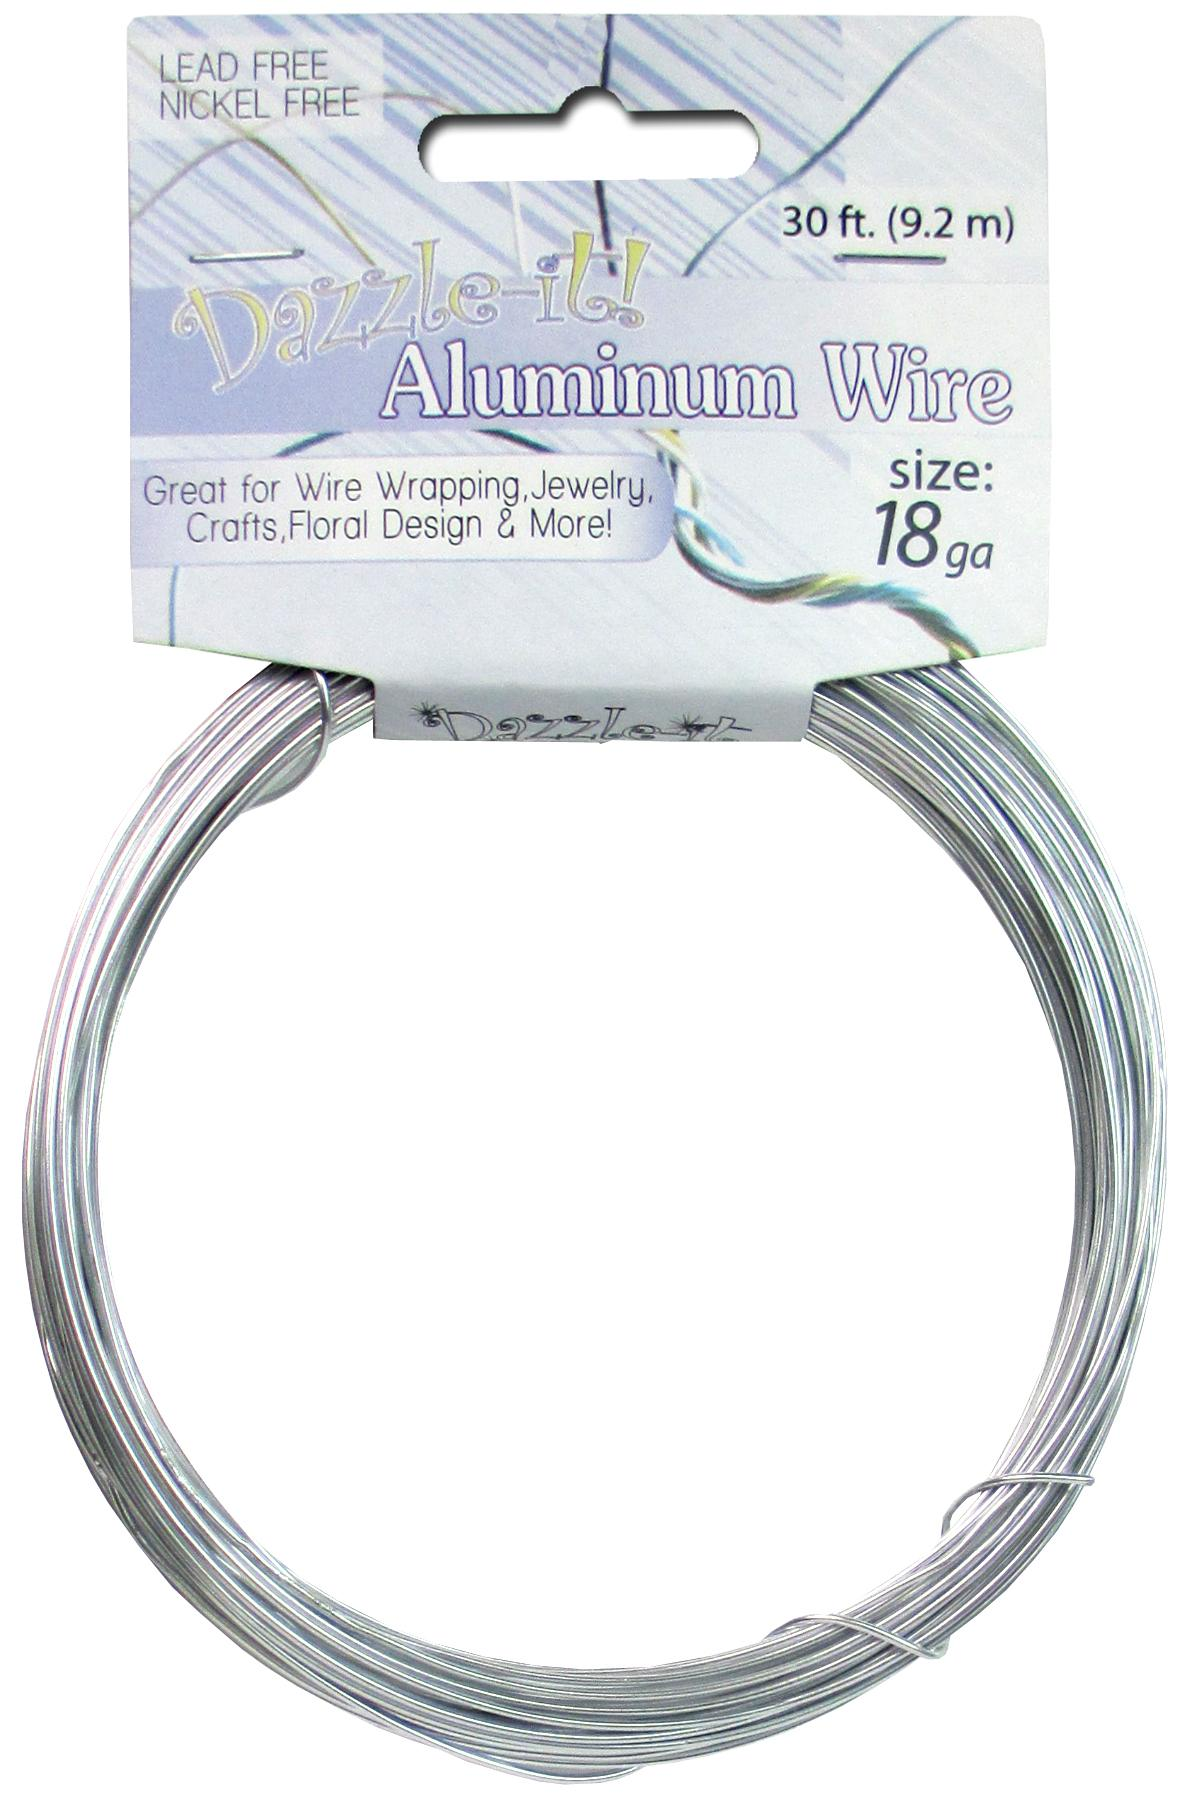 Dazzle It Aluminum Wire 18 ga. 30 ft. Round Silver -- CreateForLess